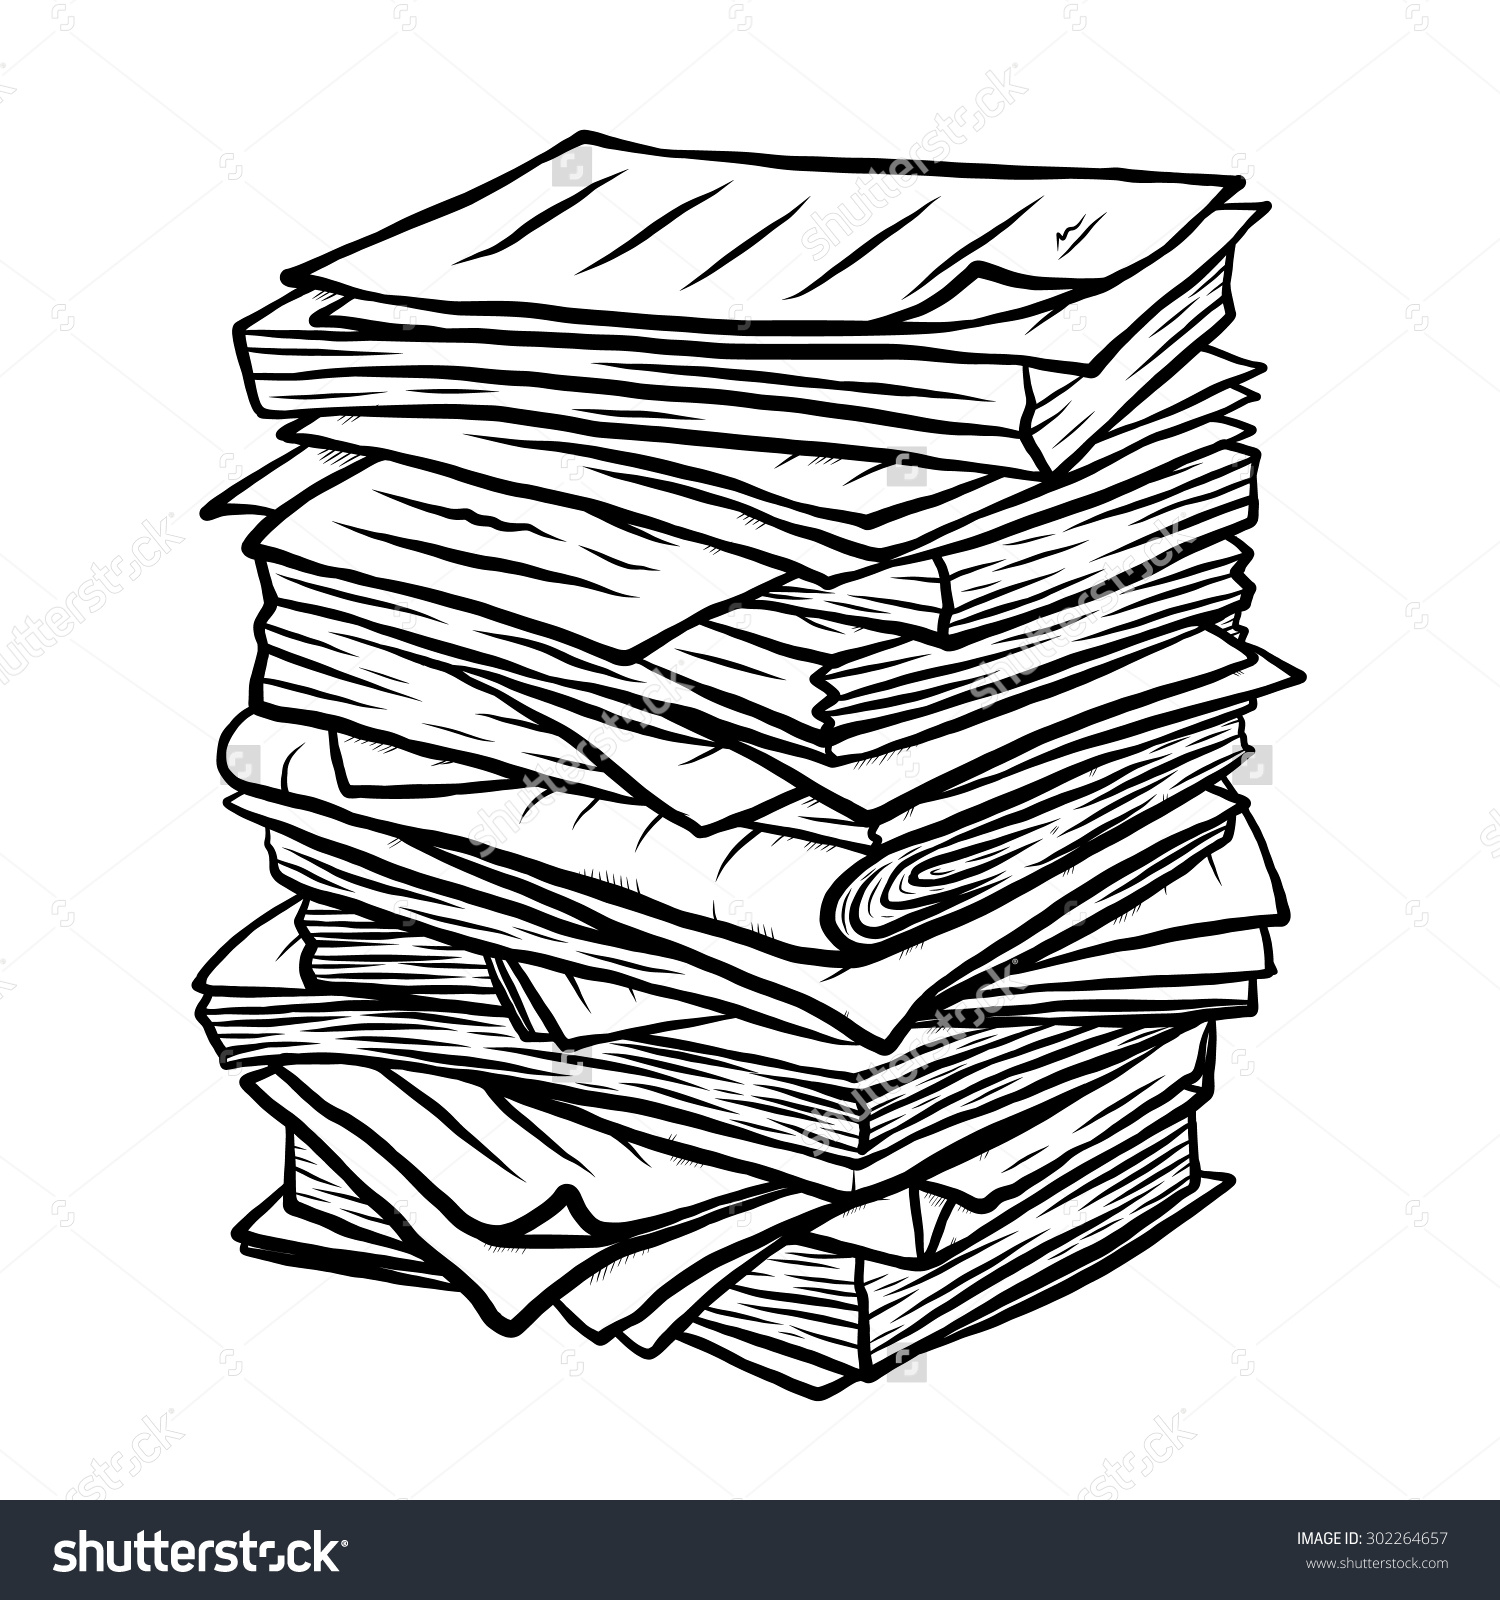 messy papers clipart - Clipground